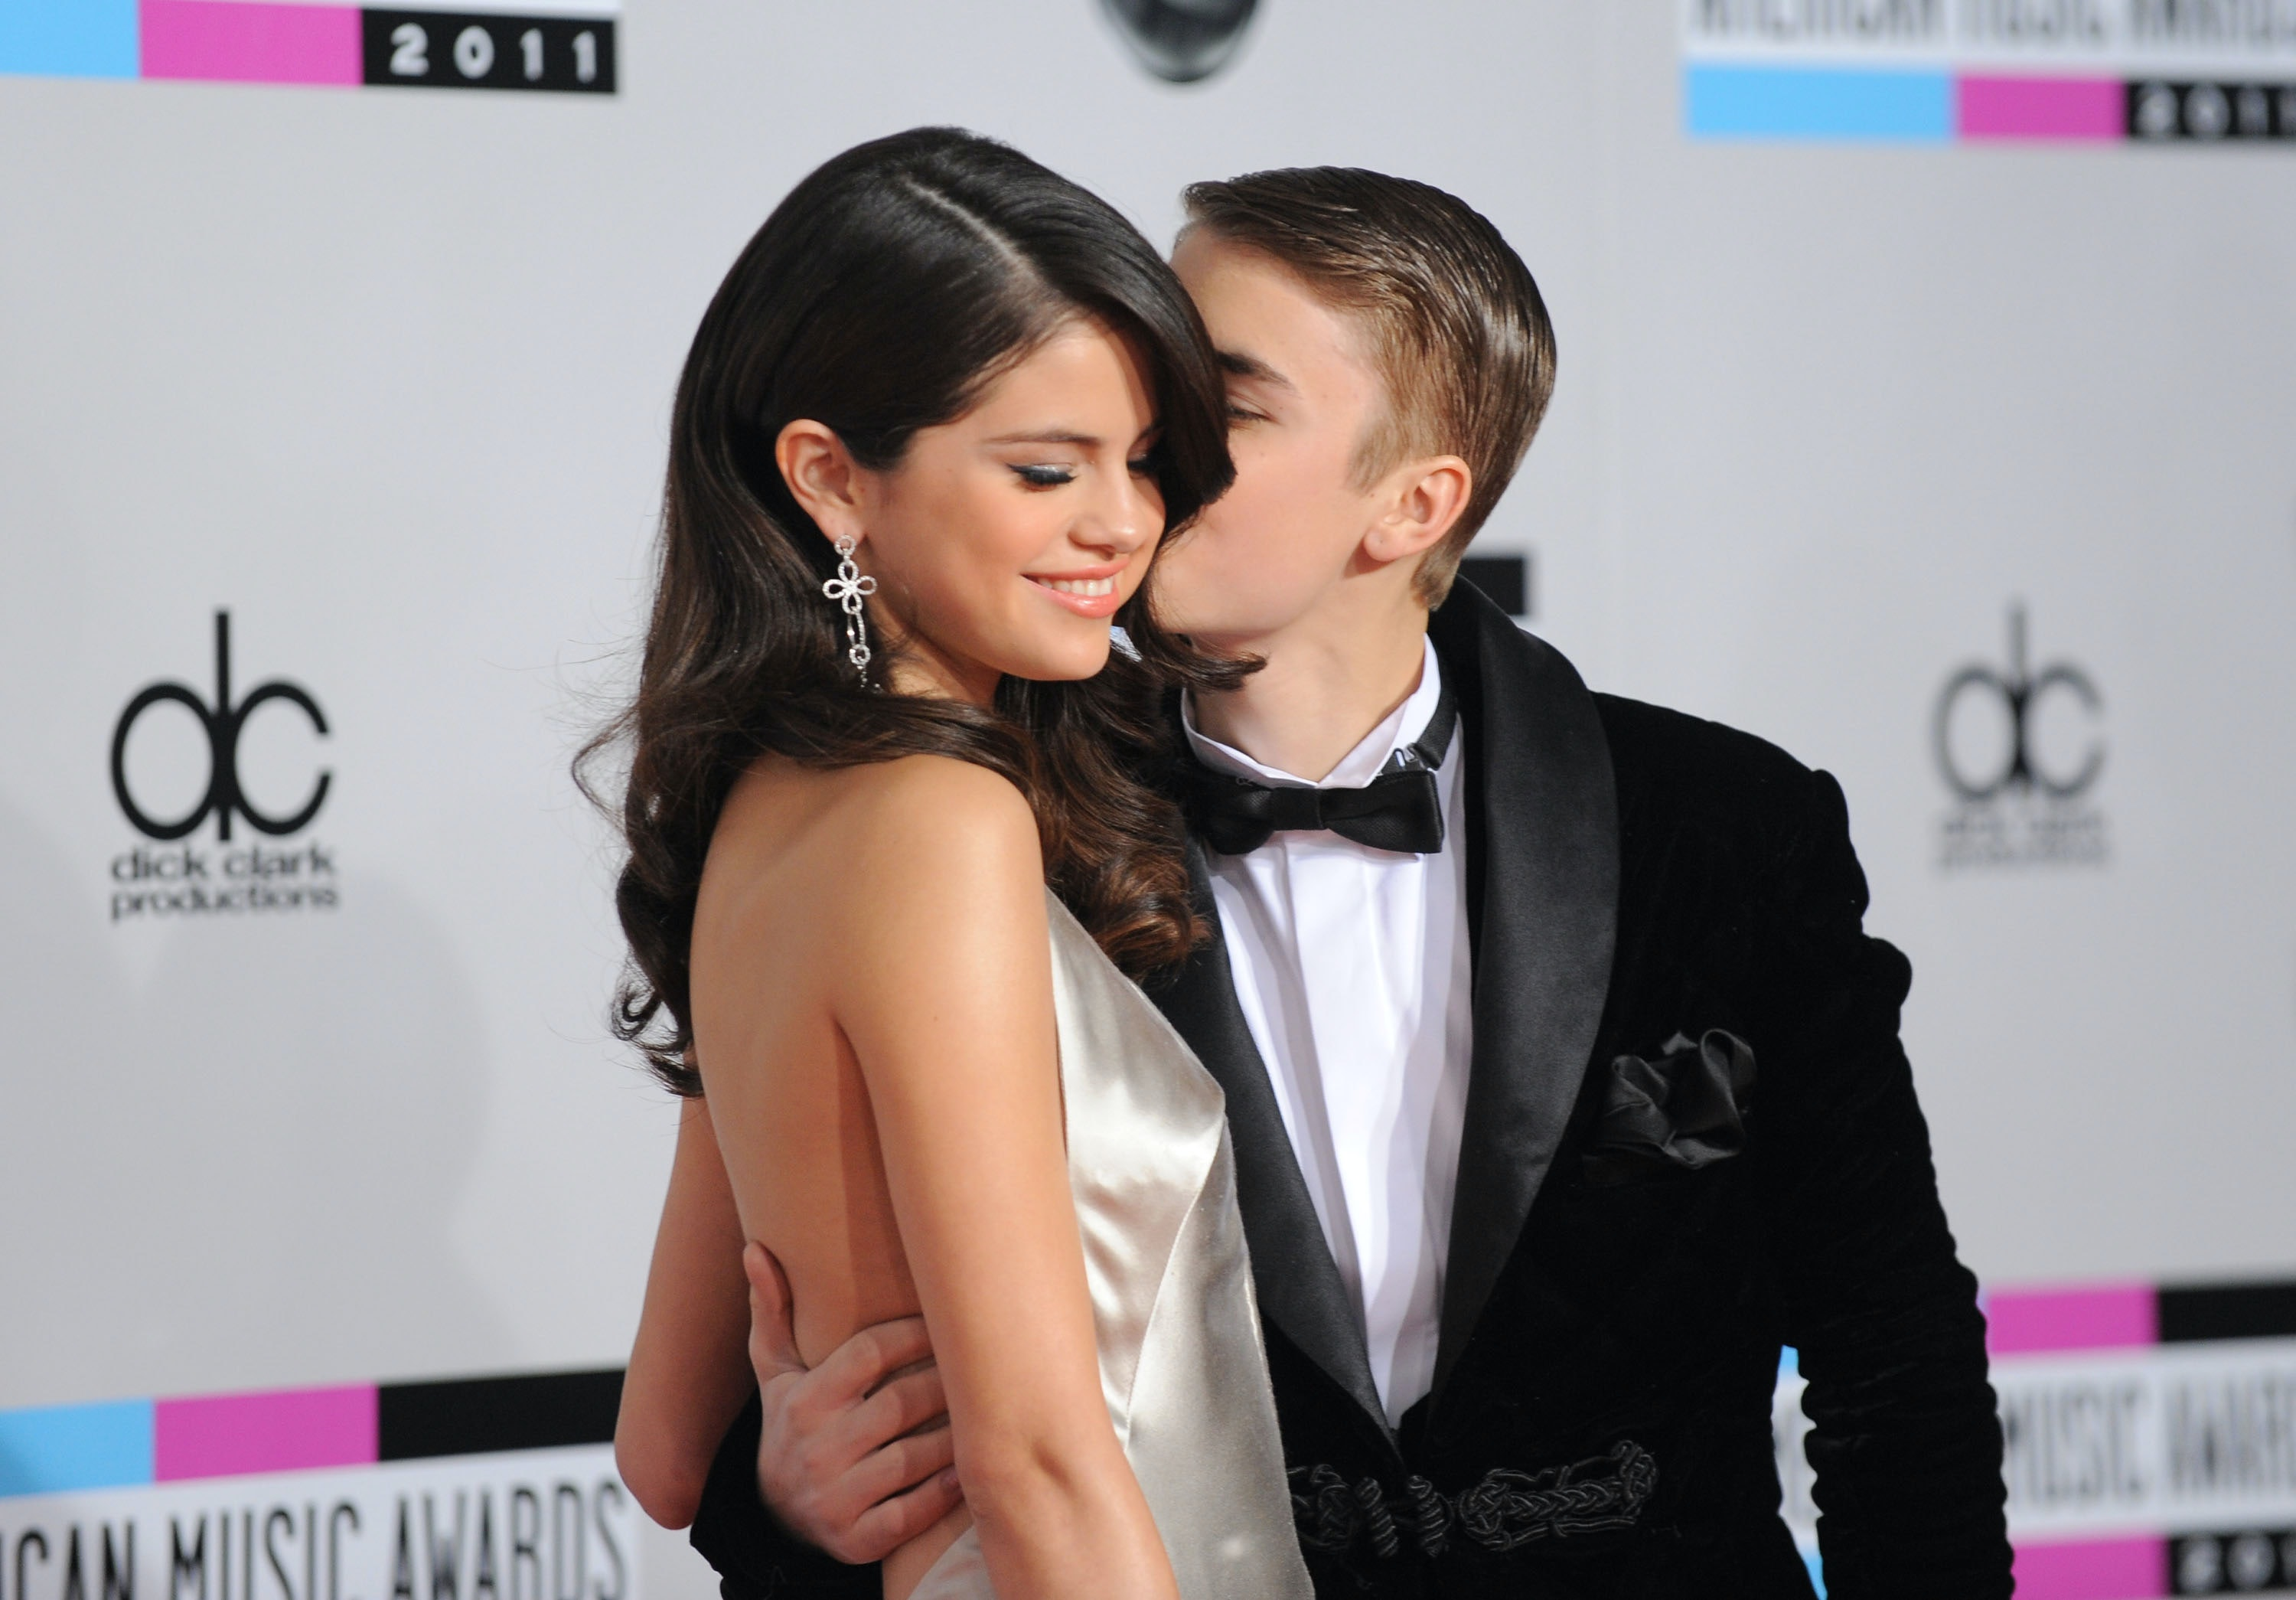 celebrity dating who are they